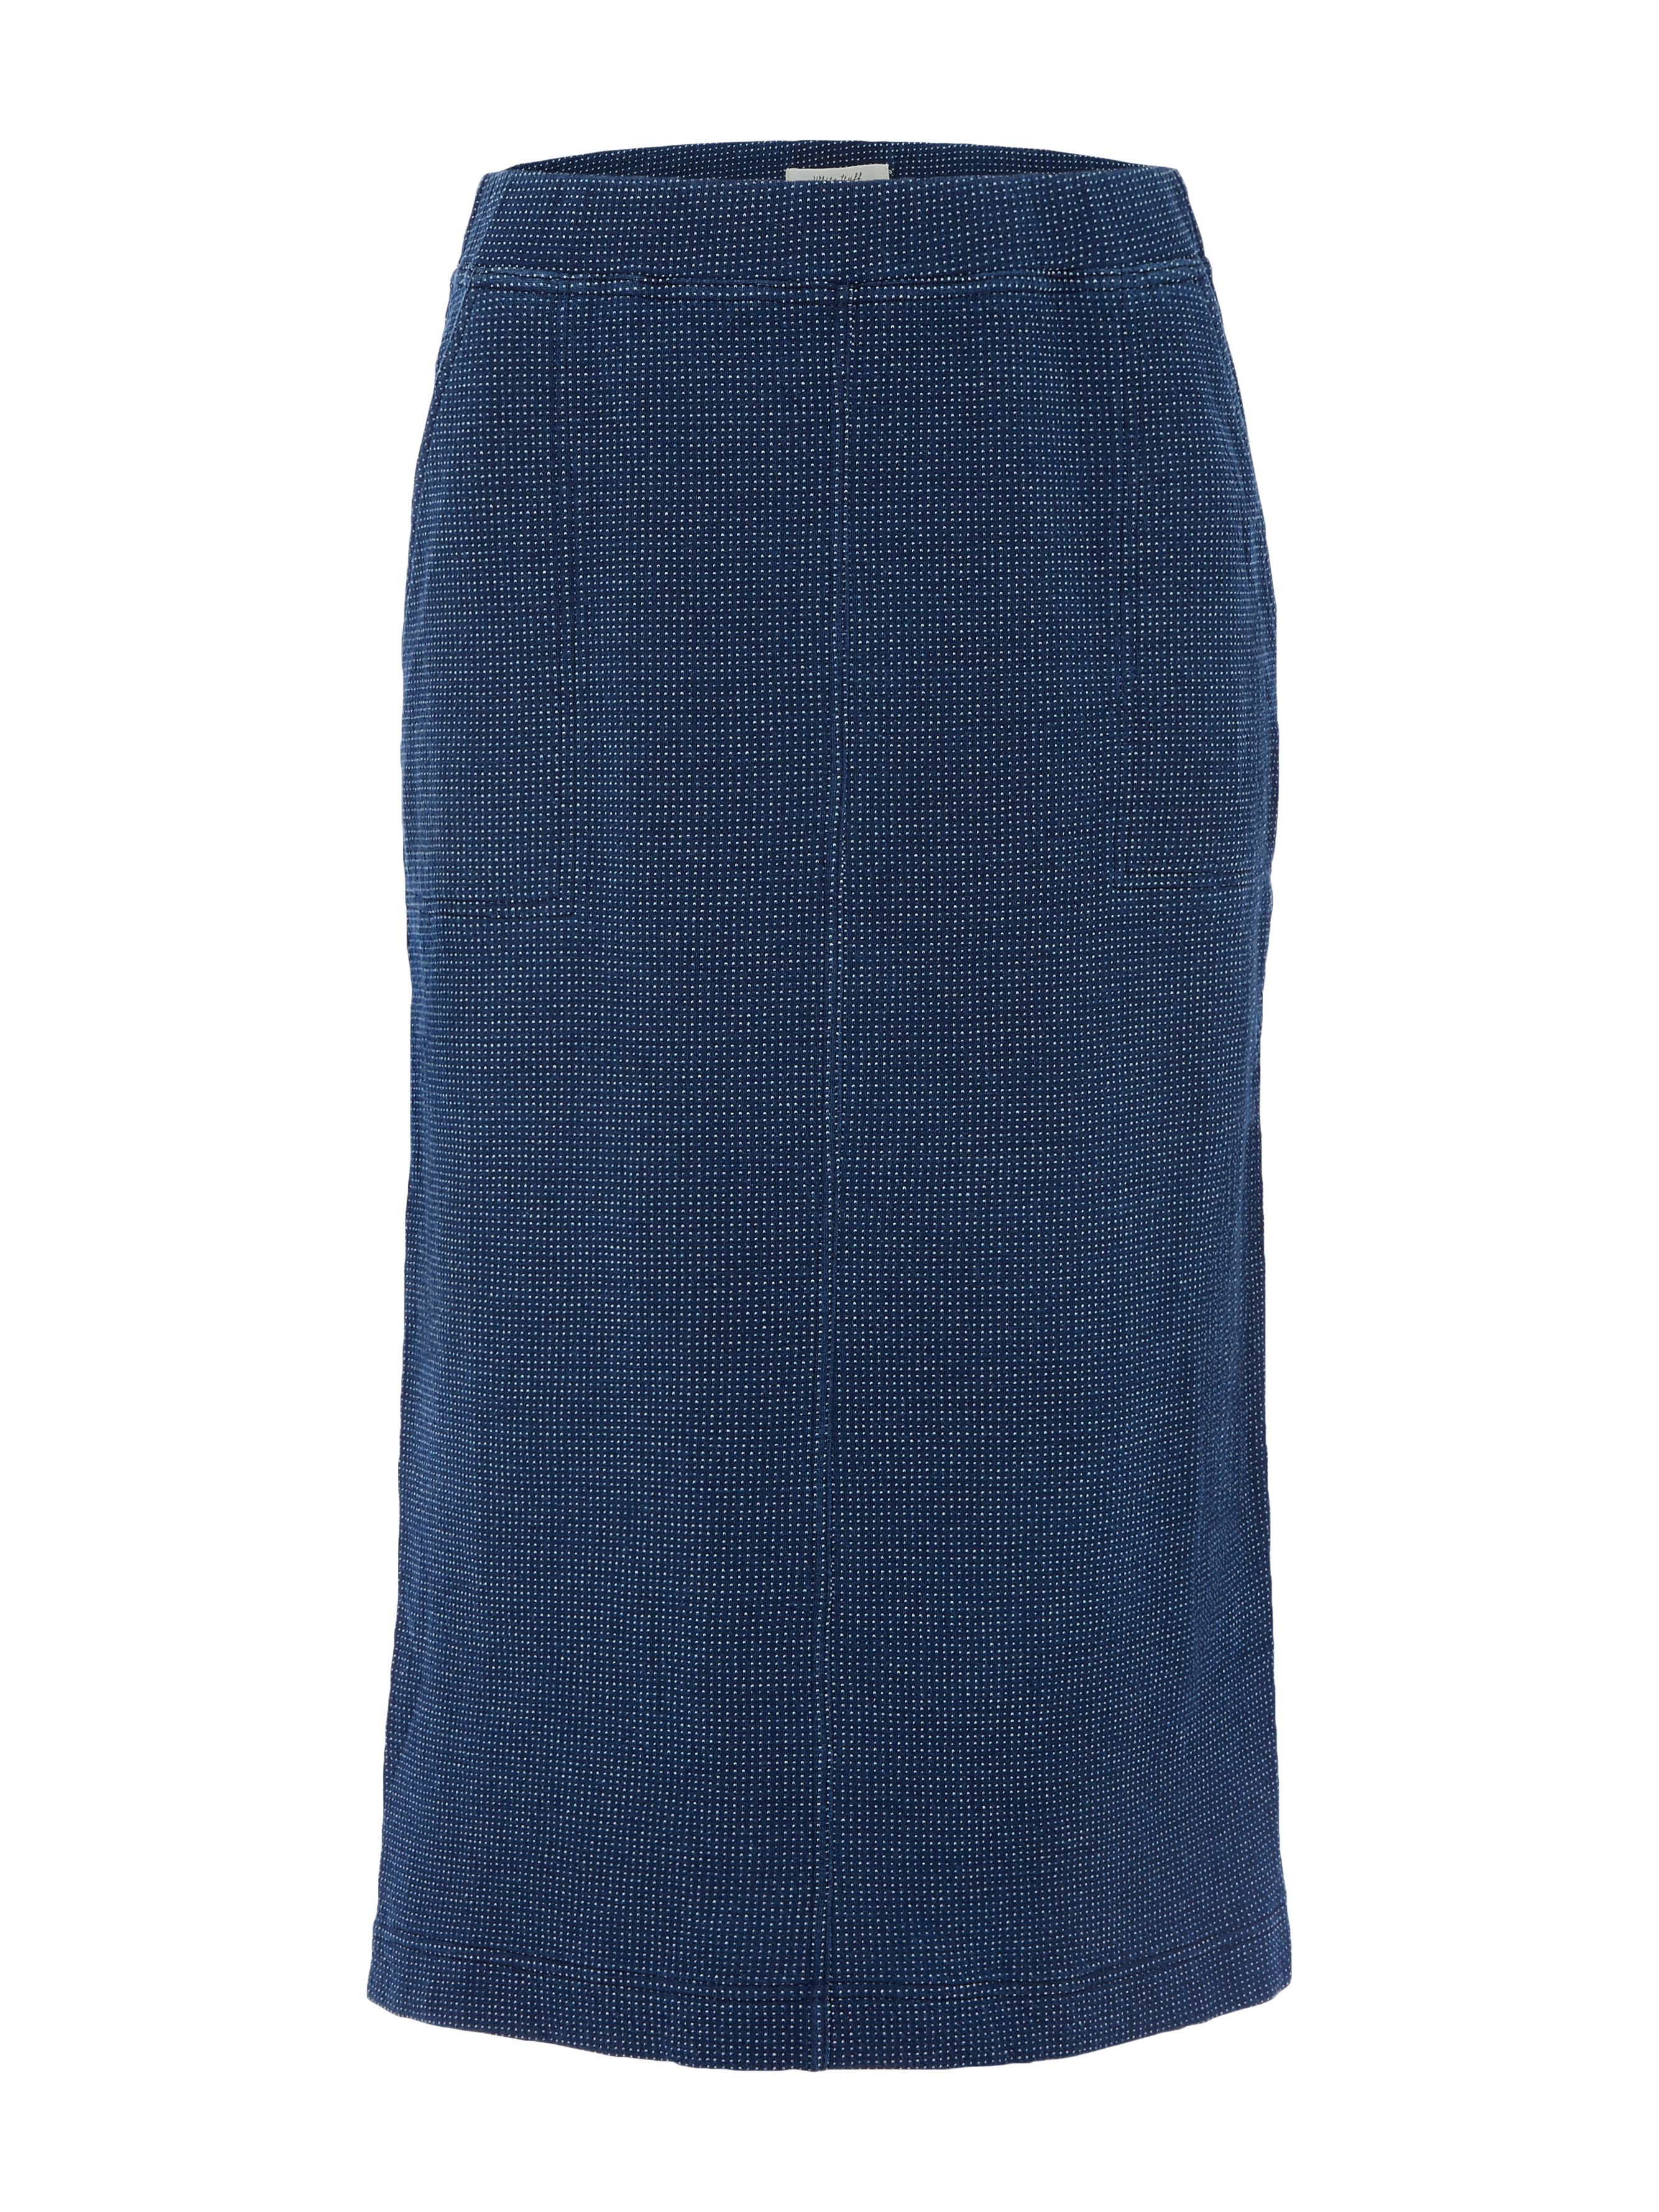 White Stuff Backwater Jersey Skirt, Blue